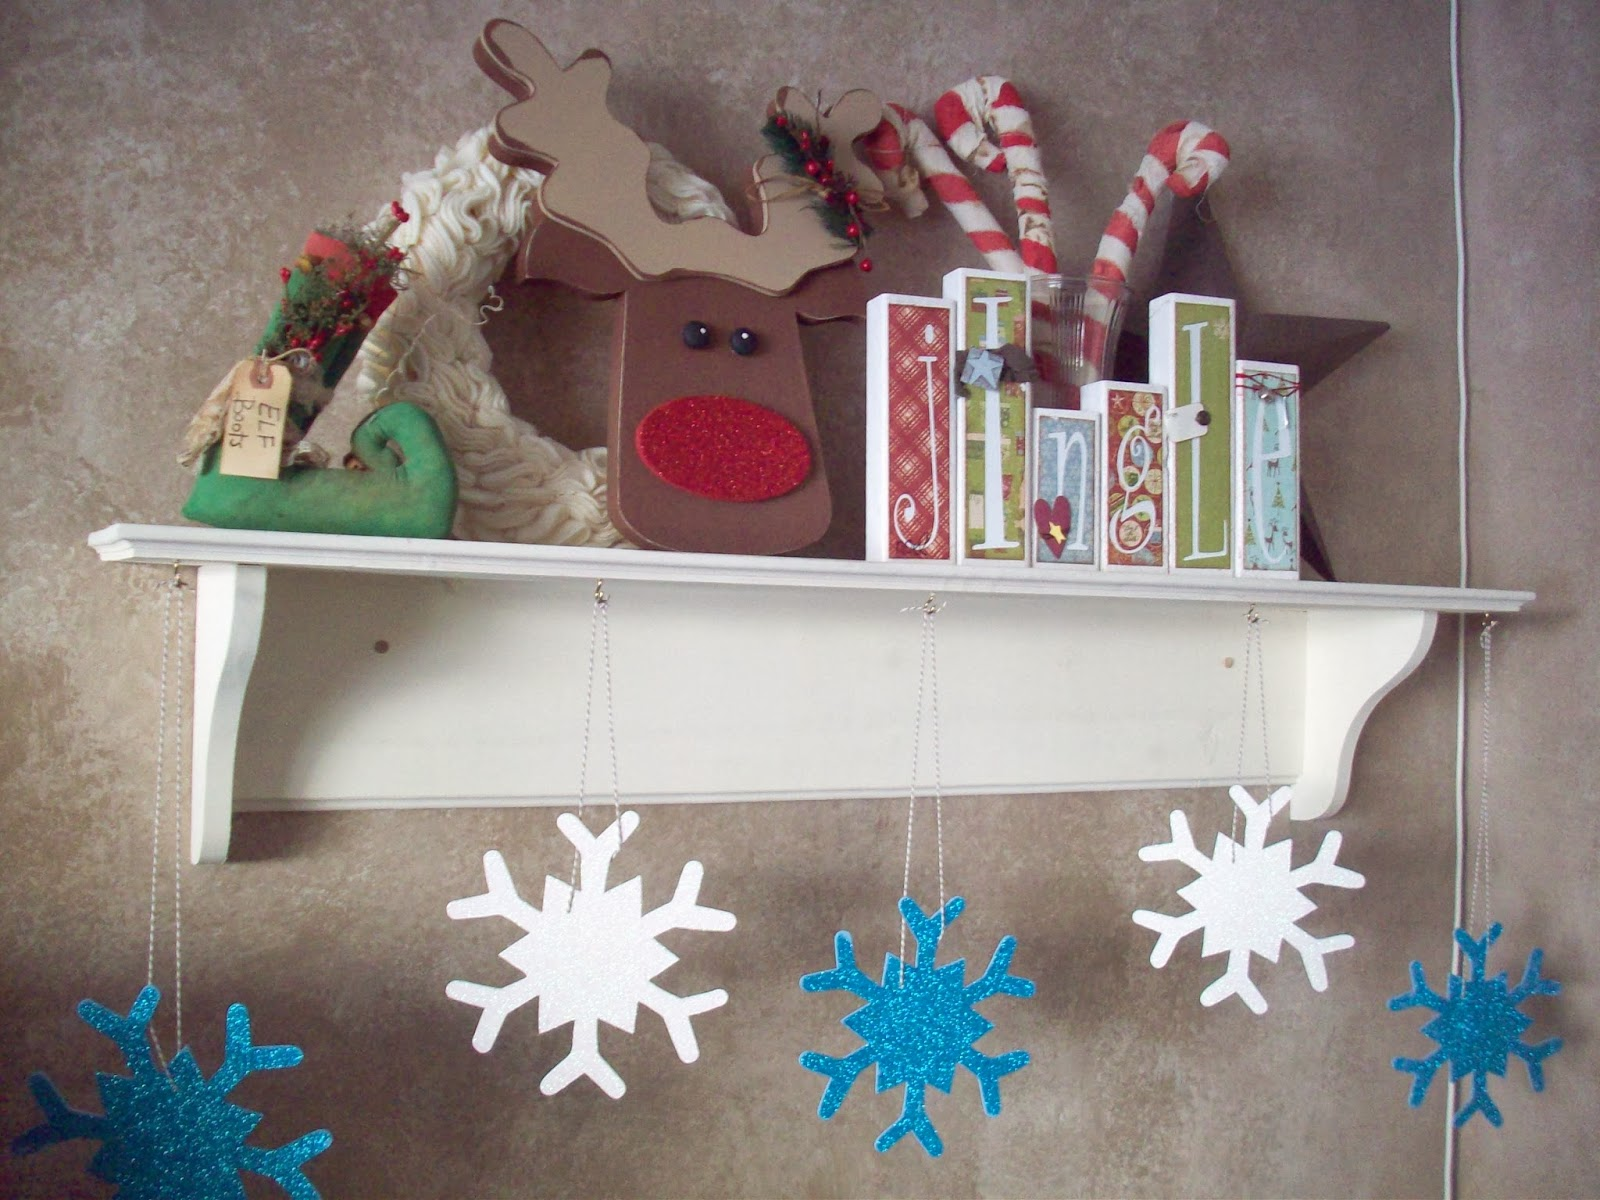 glitter snowflakes and rudolph christmas decorations glitteratmichaels - Christmas Shelf Decorations